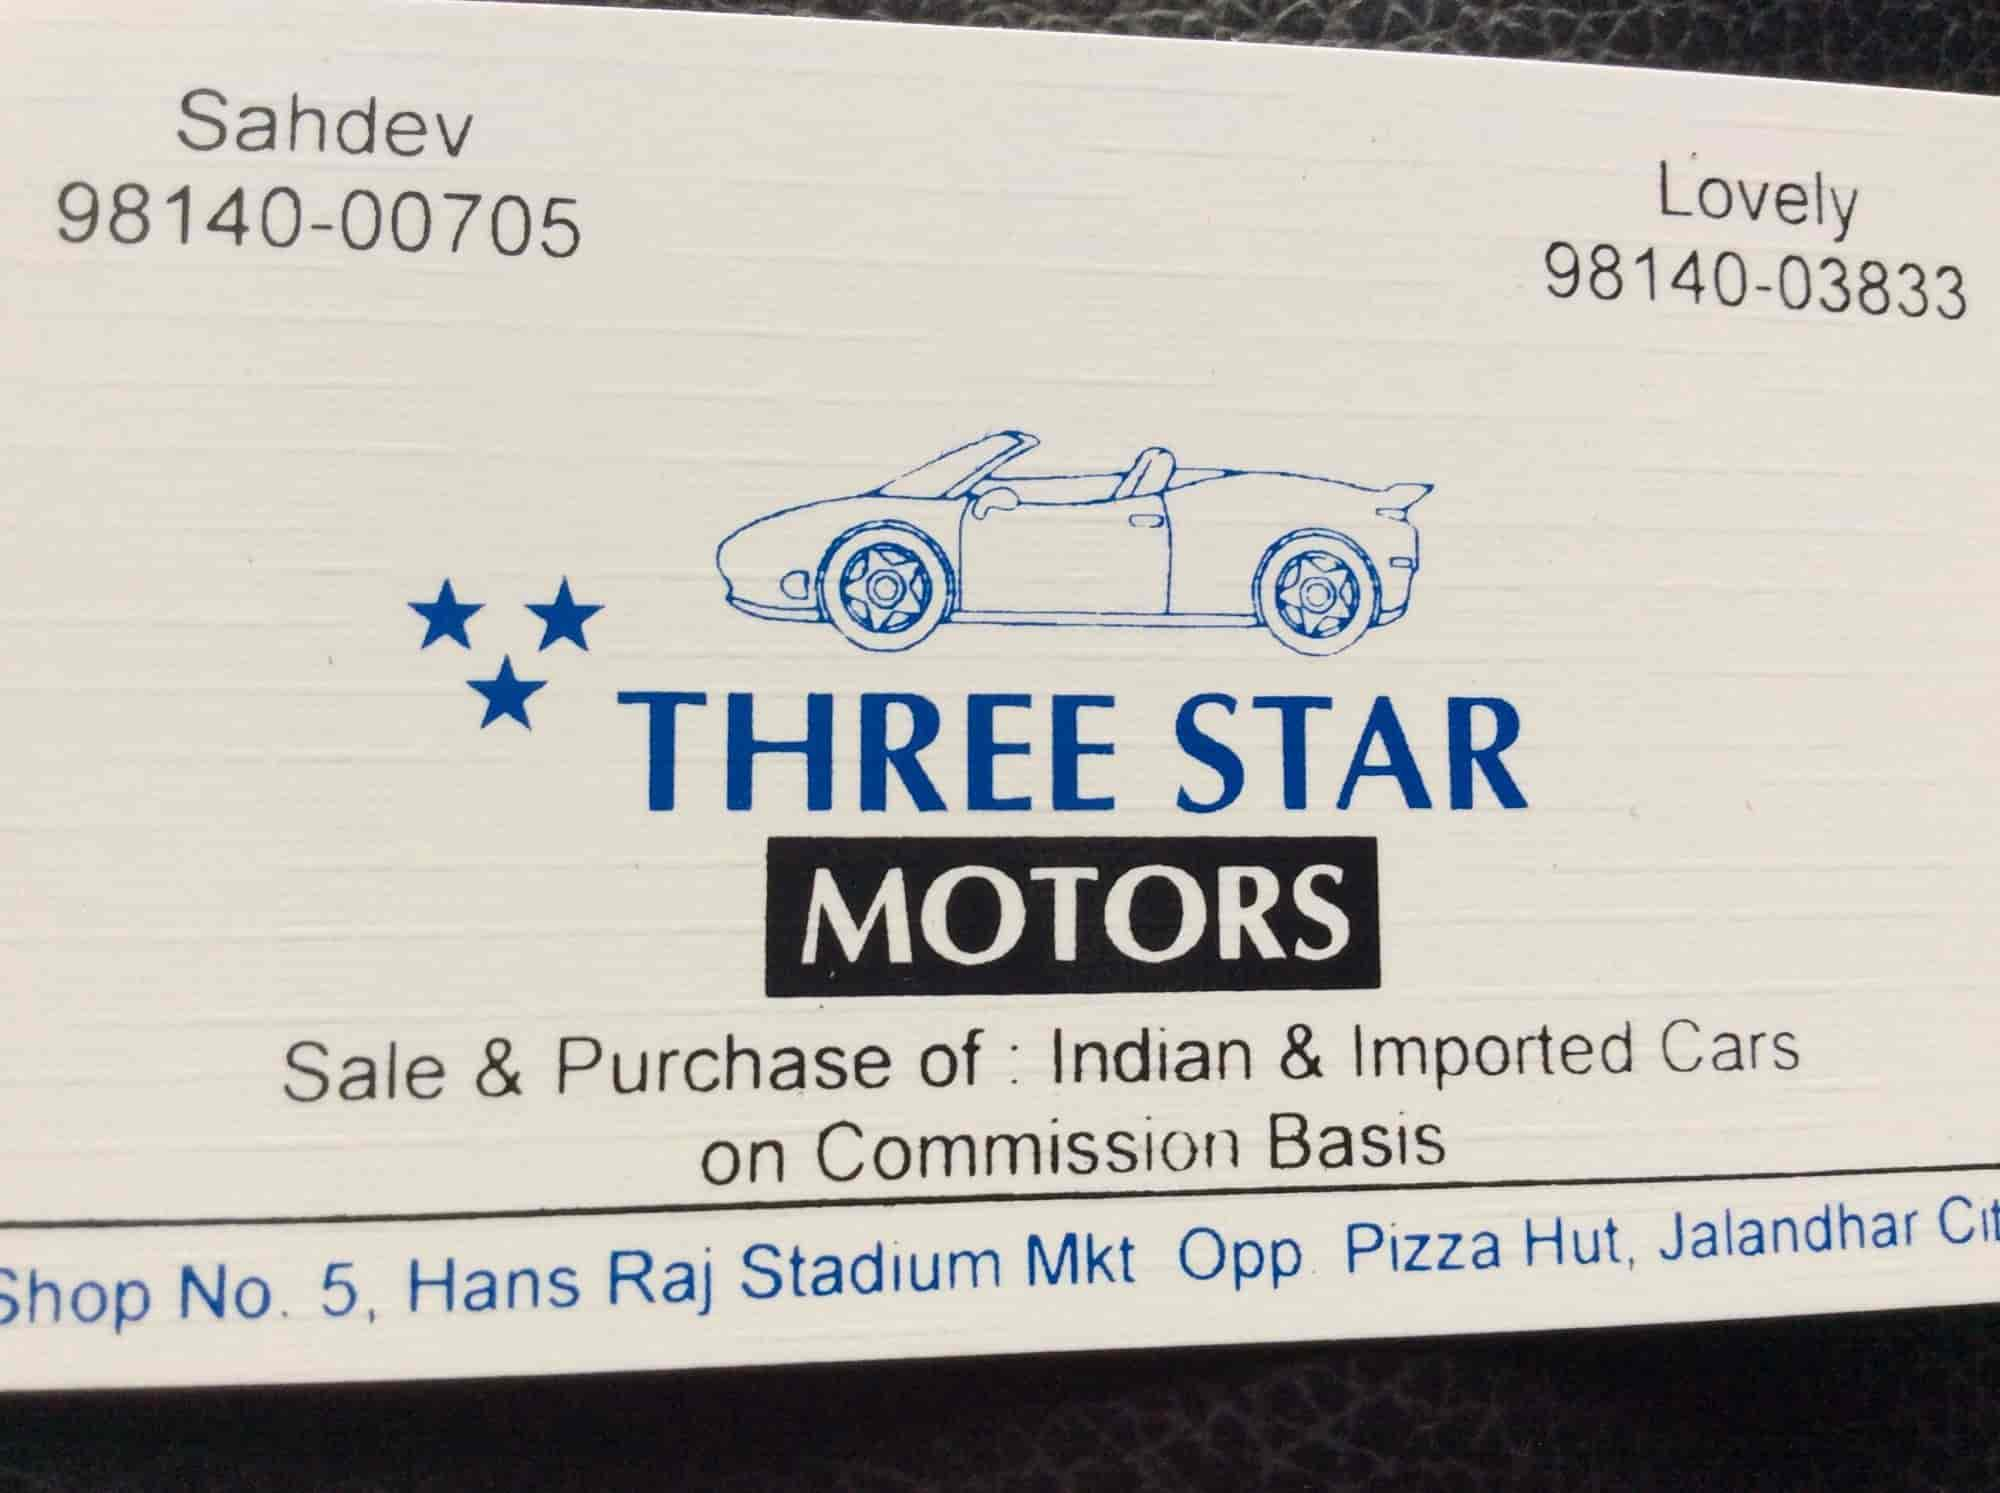 Three Star Motors, Jalandhar City - Second Hand Car Dealers in ...